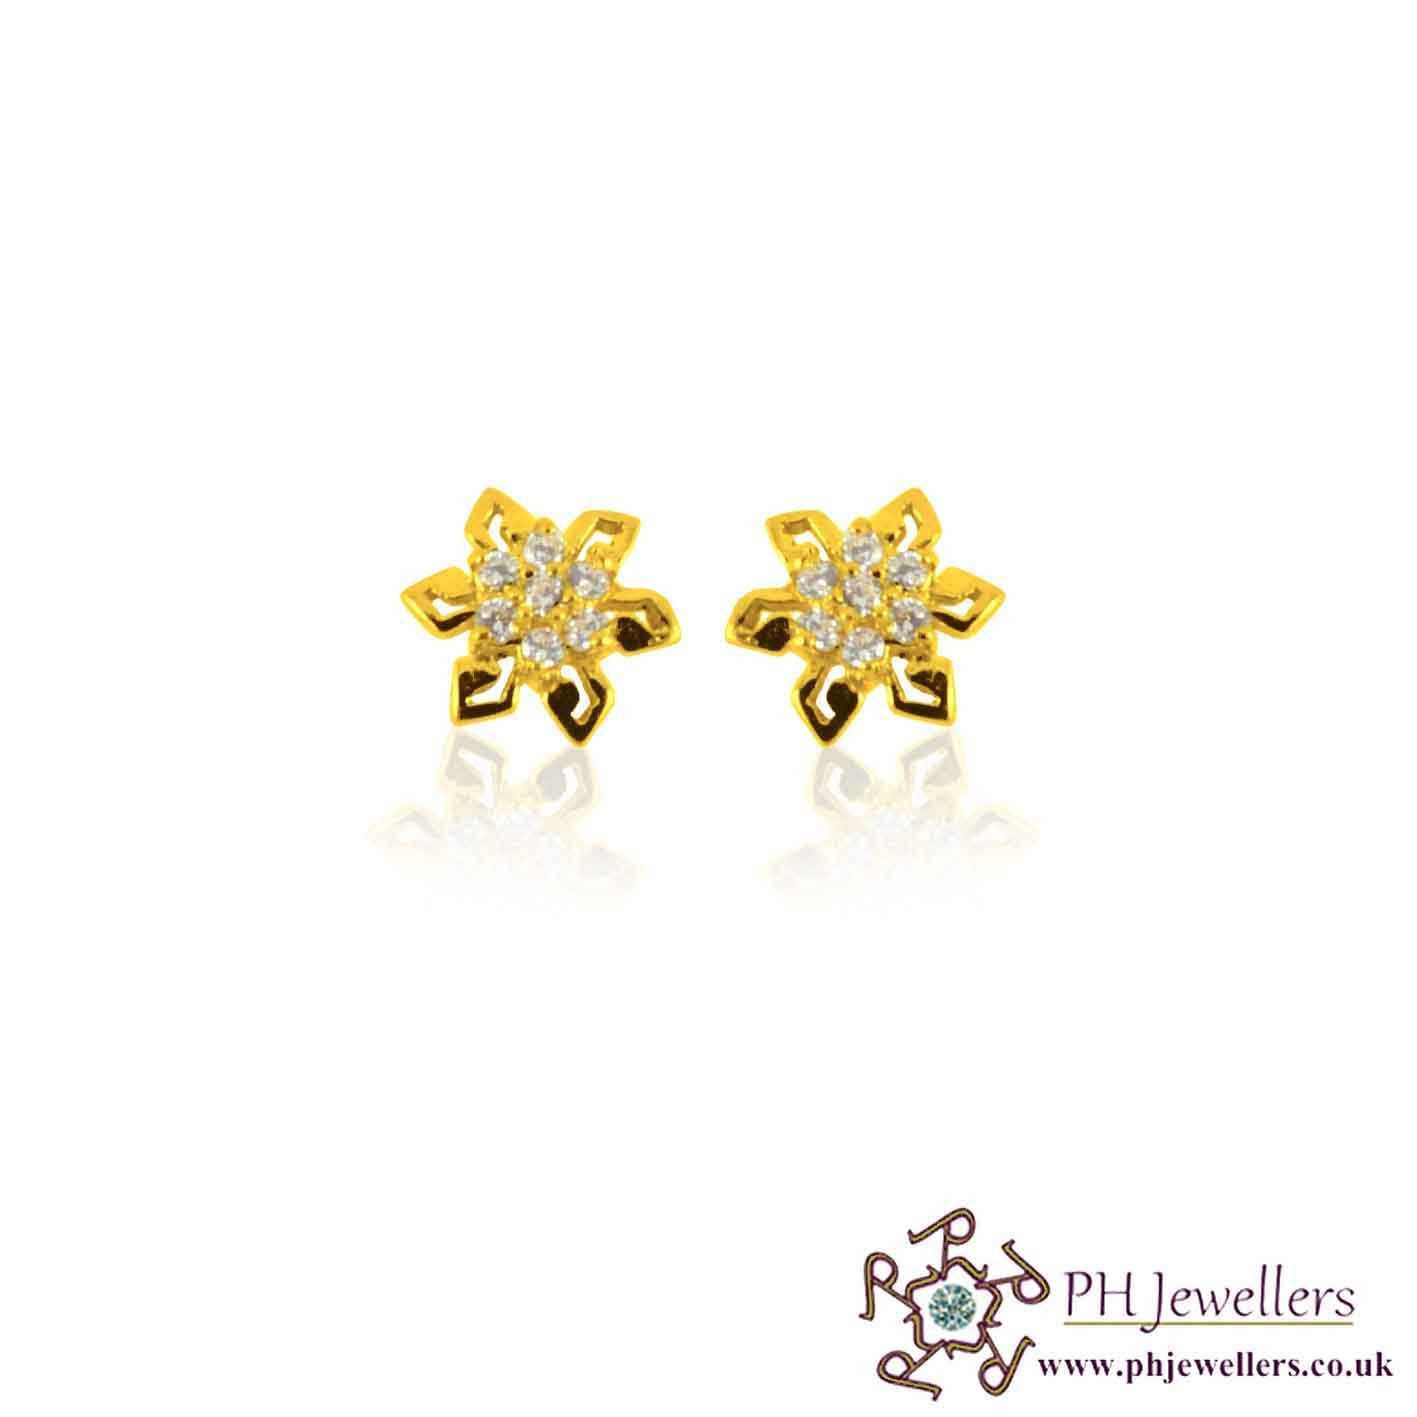 zirconia star feature a these aeravida studded post fun artisan silver earrings from ce wt feel encrusted and thai with cubic products stud cz white design flower k like cute are sparkly details shaped jai